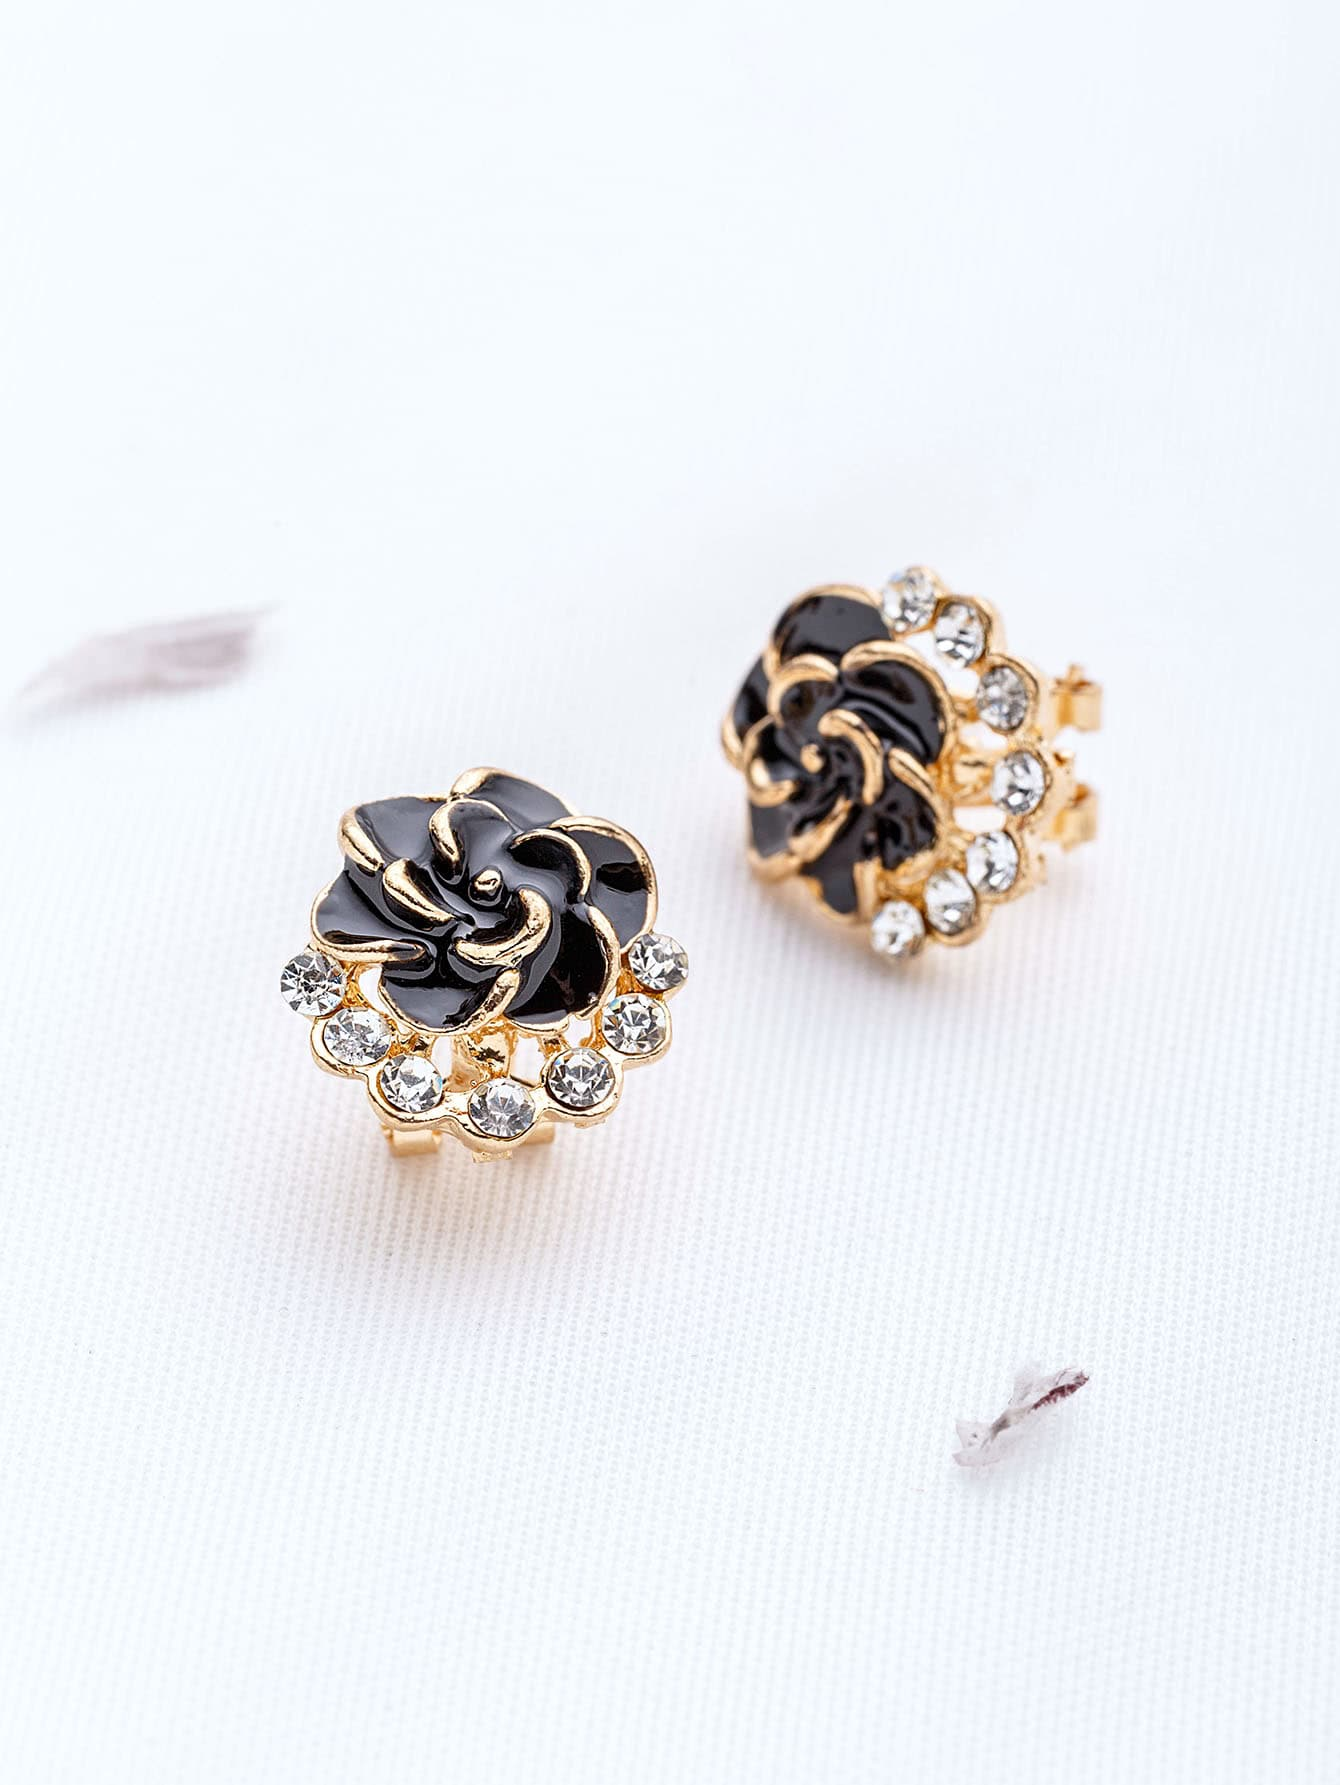 Black Flower Shaped Stud Earrings square shaped stylish crystal zinc alloy stud earrings black bronze pair